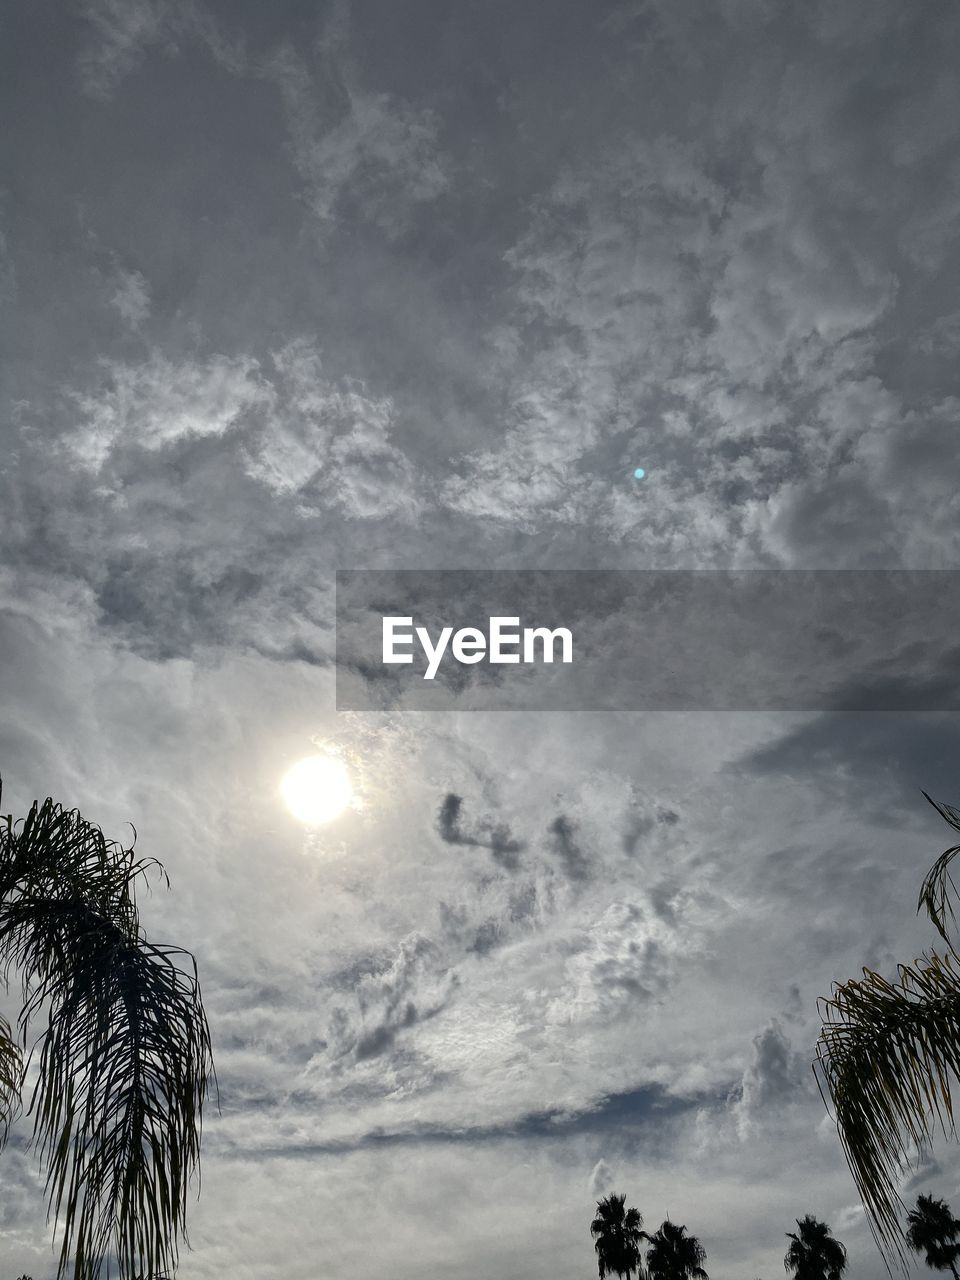 sky, cloud - sky, tree, low angle view, plant, beauty in nature, nature, no people, tranquility, palm tree, tropical climate, scenics - nature, tranquil scene, moon, sun, outdoors, silhouette, sunlight, sunbeam, moonlight, palm leaf, ominous